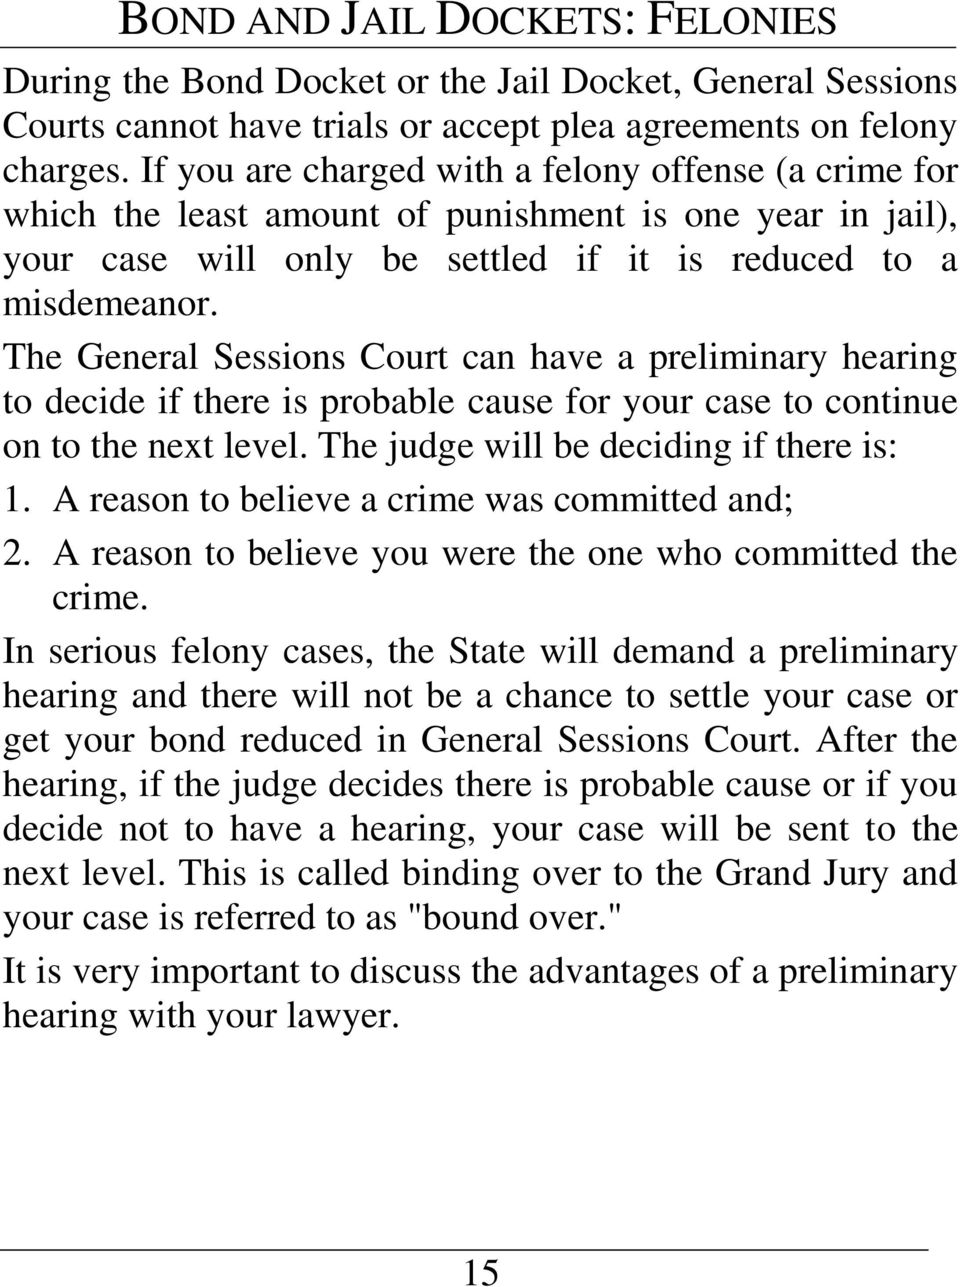 The General Sessions Court can have a preliminary hearing to decide if there is probable cause for your case to continue on to the next level. The judge will be deciding if there is: 1.